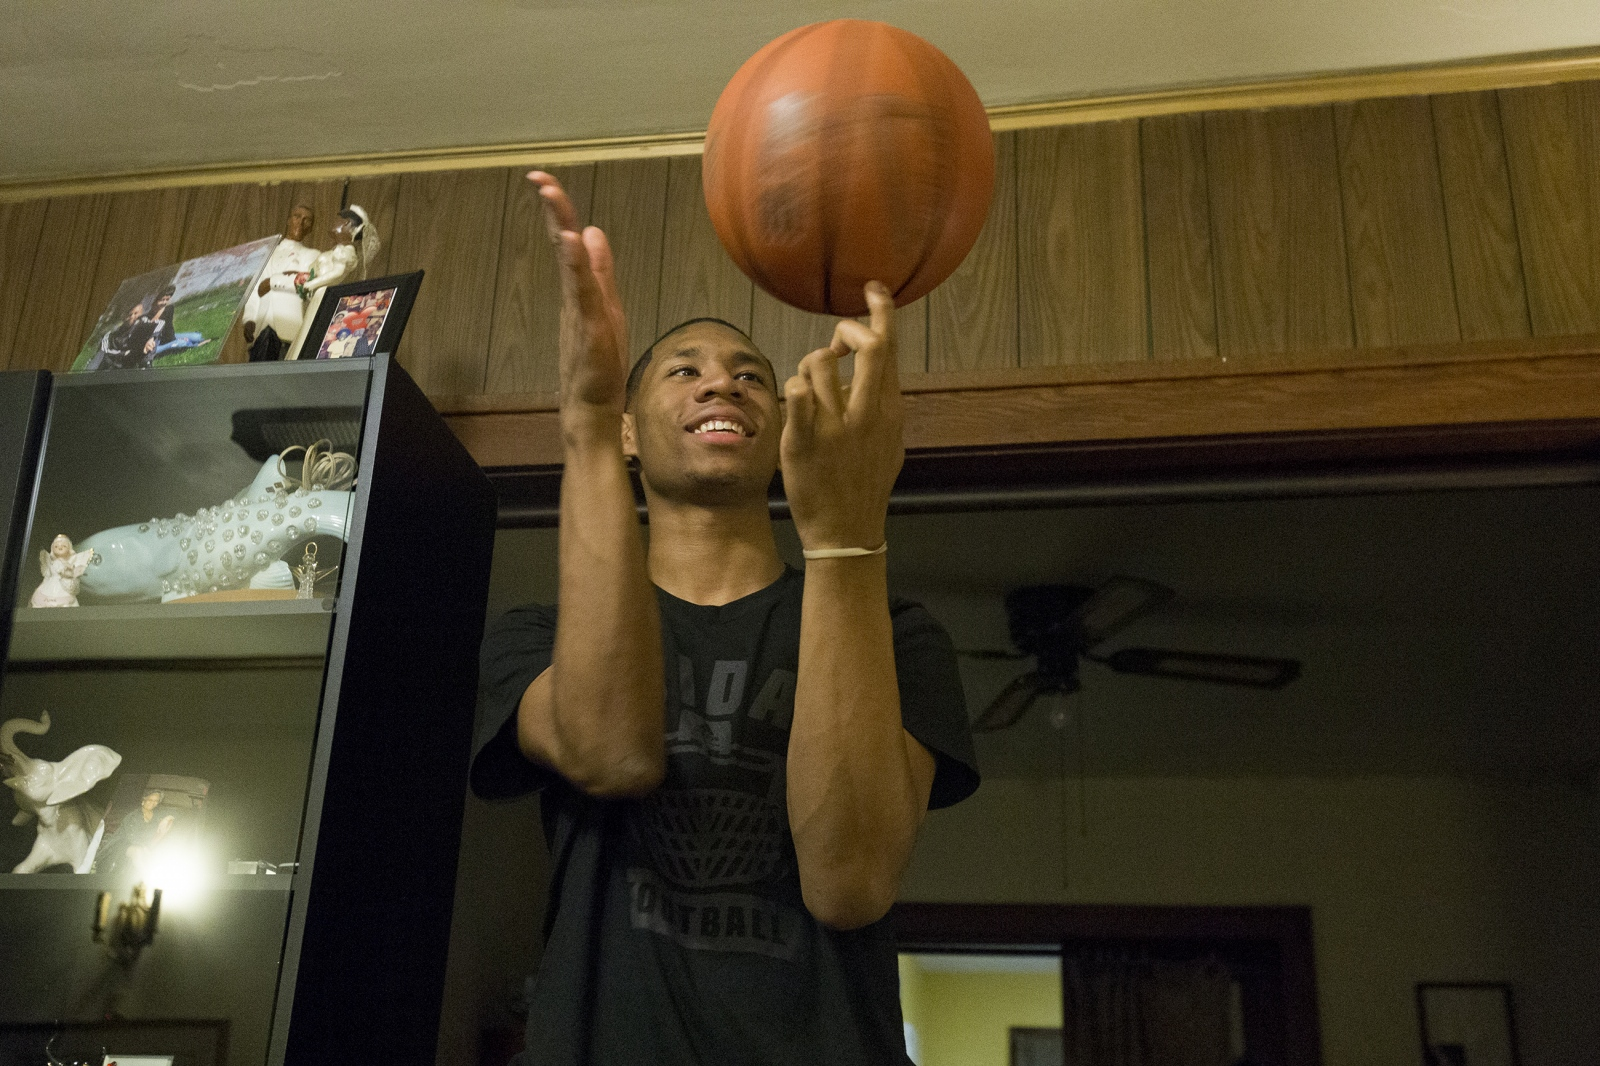 Michael spins a basketball on his finger late one evening in his living room.